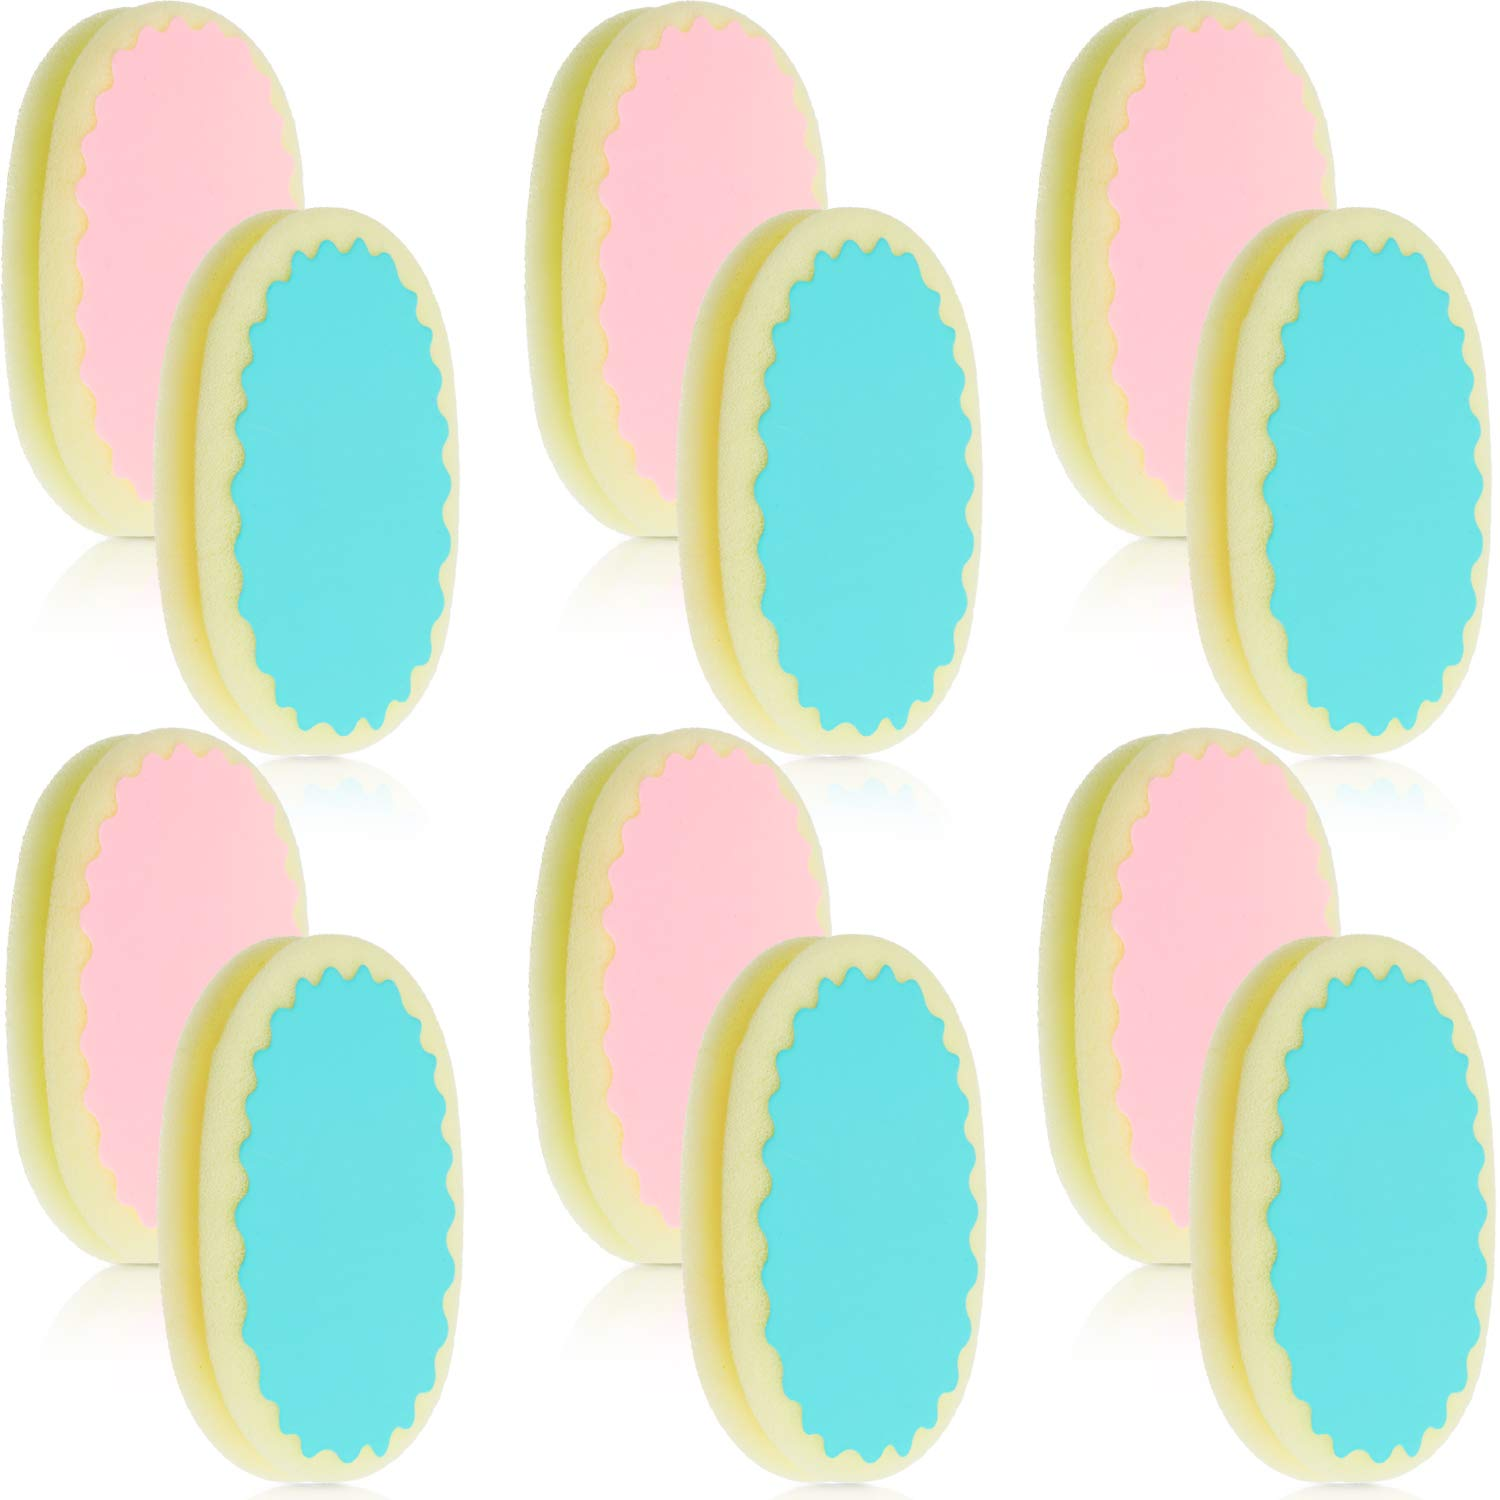 12 Pieces Hair Remover Sponge Depilation Sponge Pad Painless Hair Removal Sponge Pads for Face, Lip, Arm, Chin and Leg